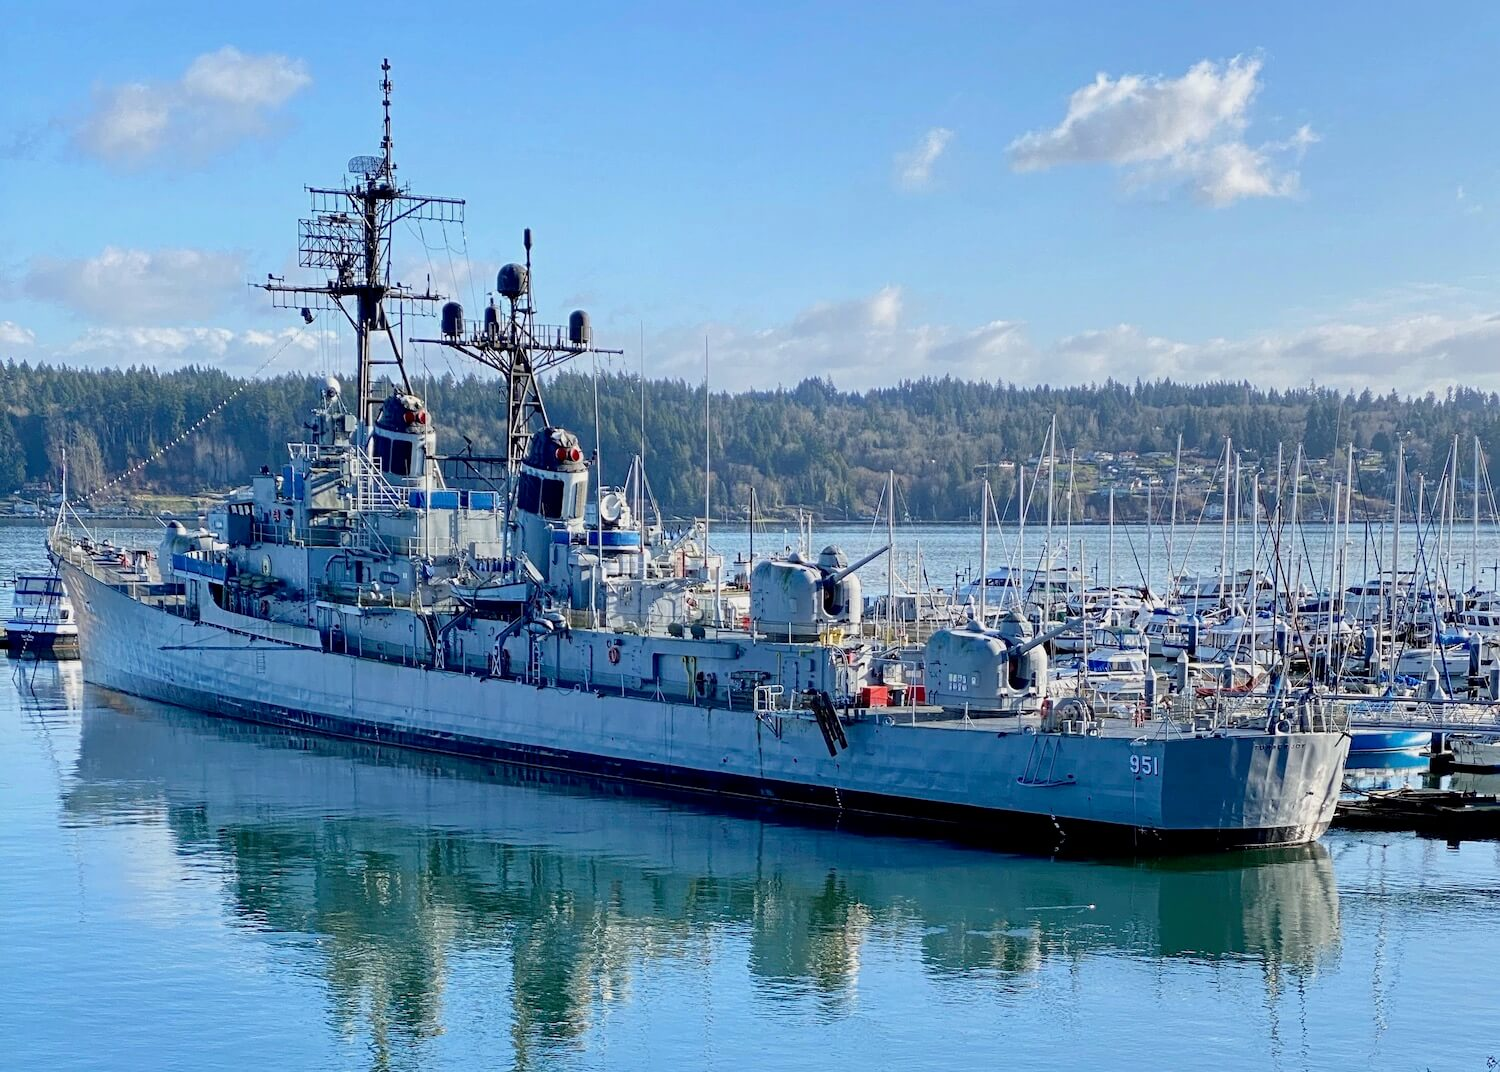 The USS Turner Joy is a floating naval museum in Bremerton Washington and this photo is of a warship painted gray with a marina of smaller, mostly sailboats in the distance.